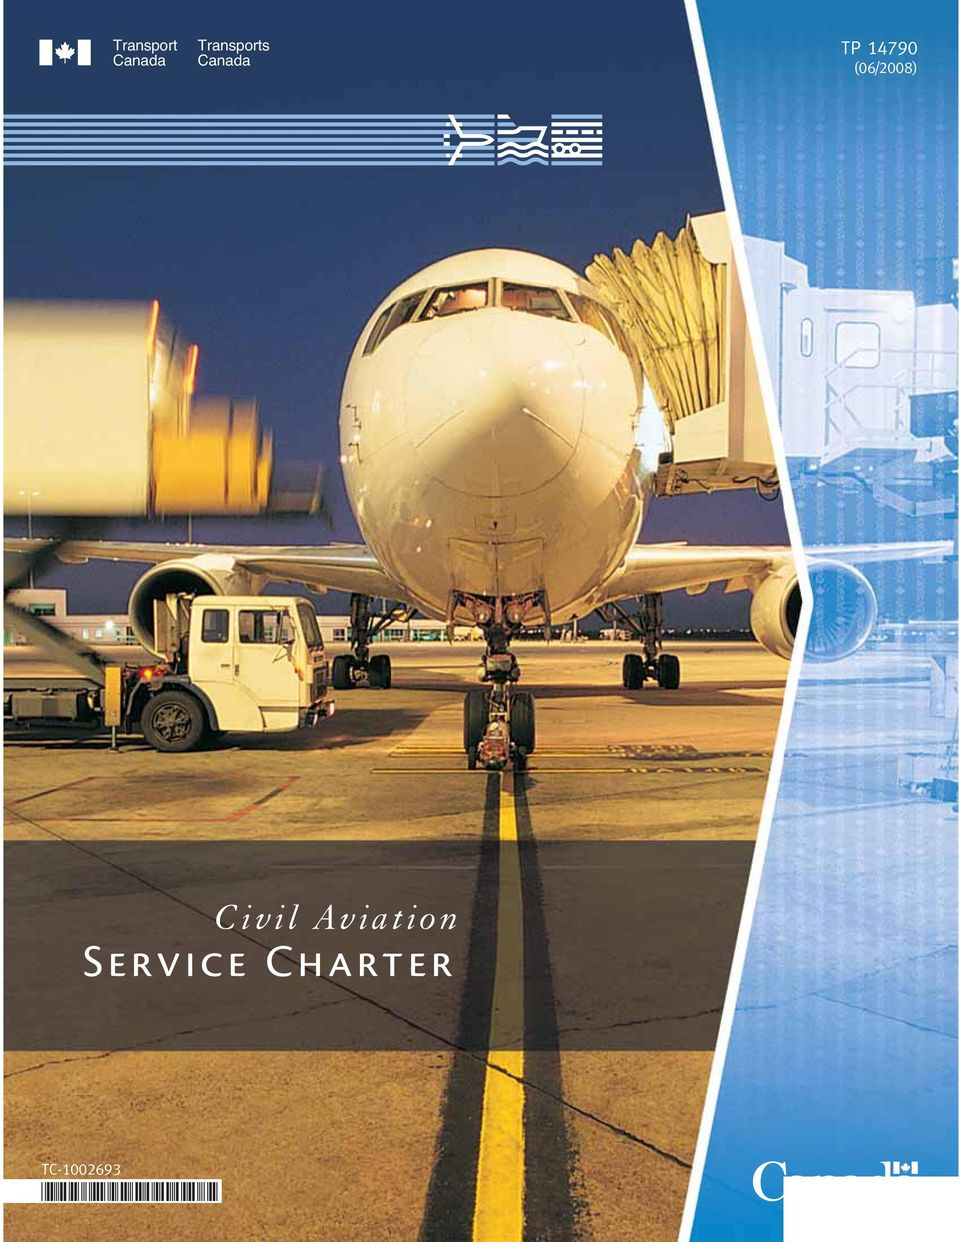 (06/2008) Civil Aviation